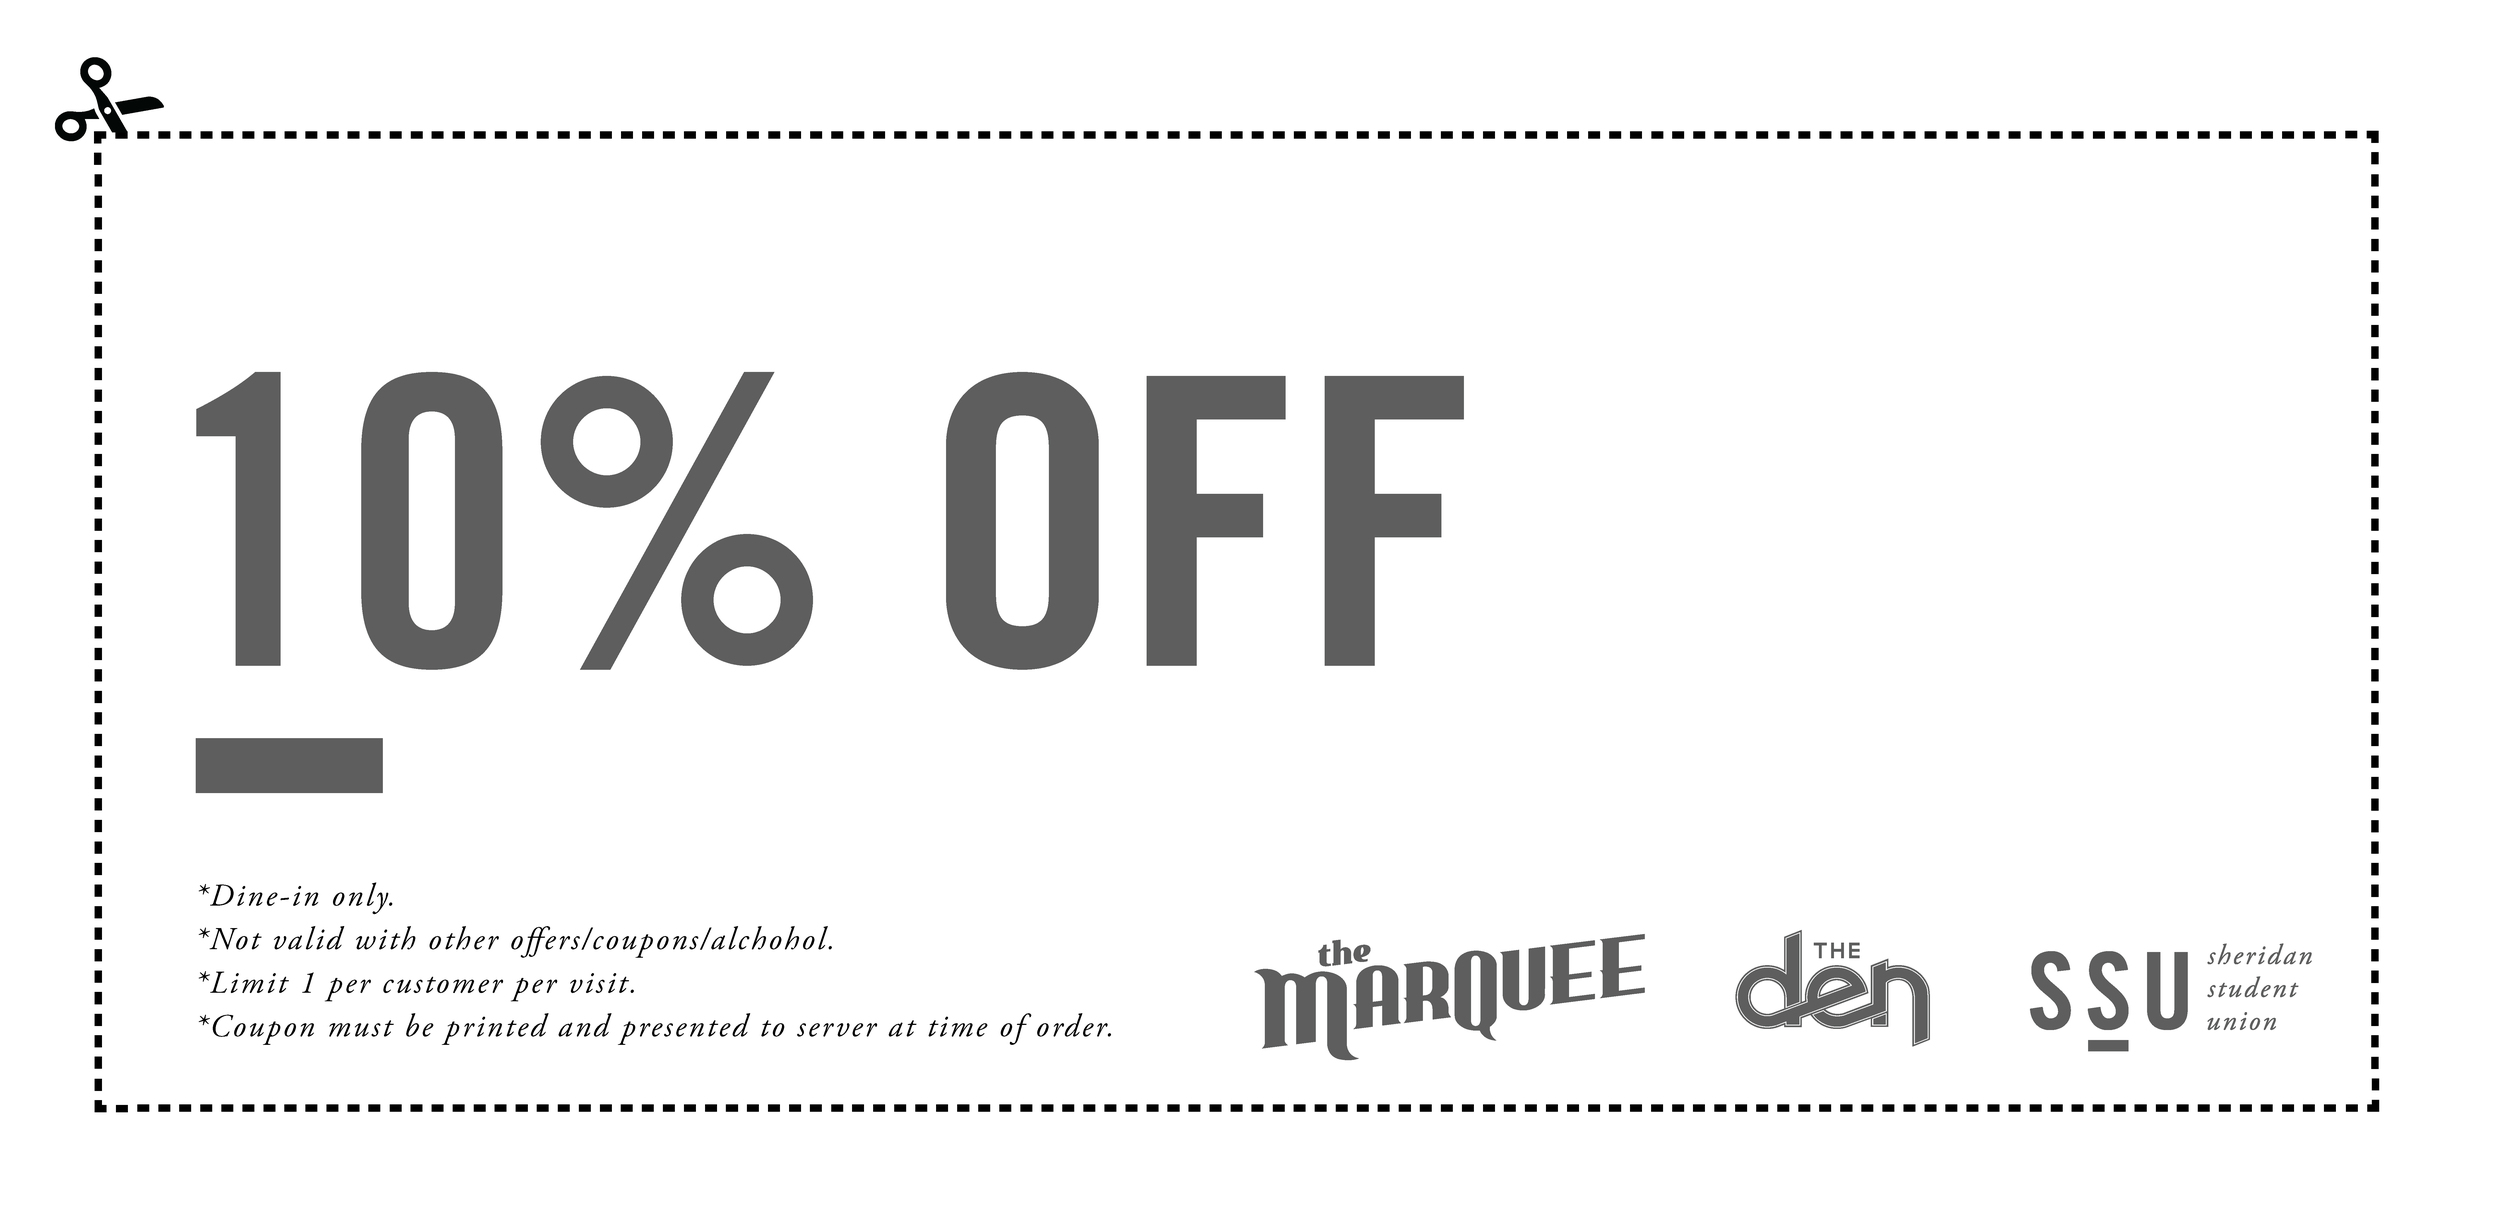 Download this coupon for 10% off your order.Scroll down for even more deals!